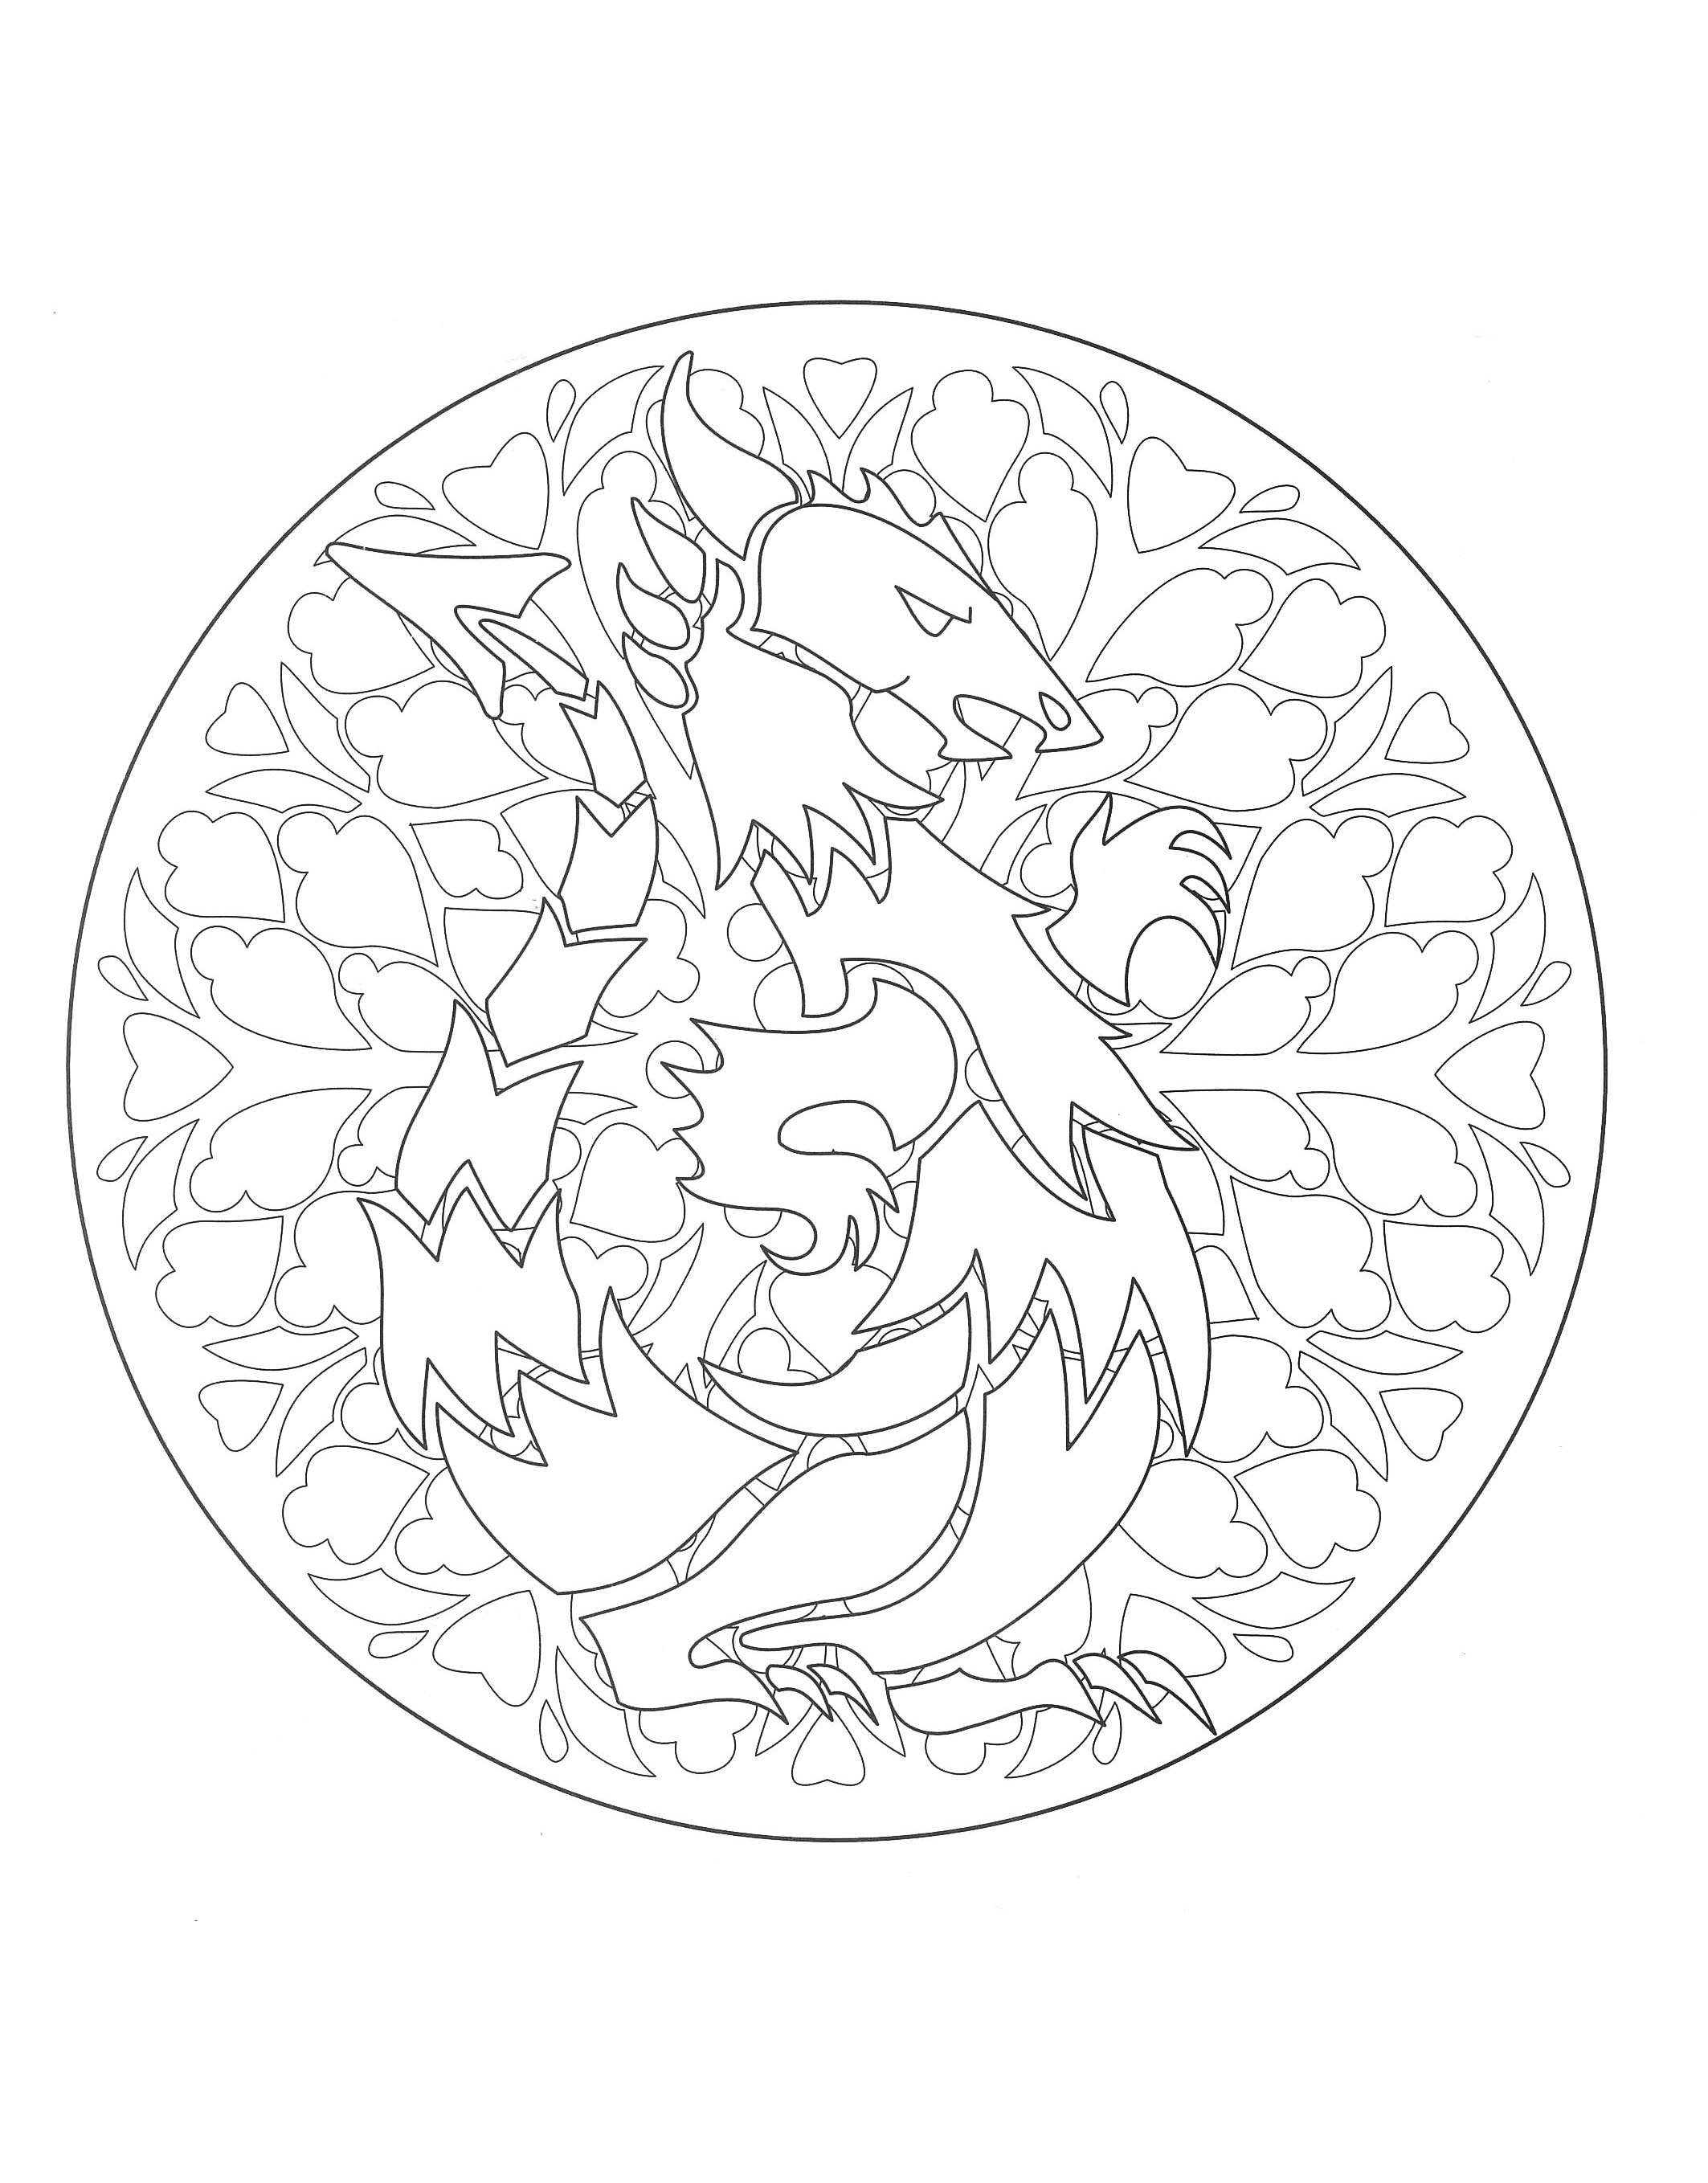 Free mandala dragon 1 difficult mandalas for adults for Animal mandala coloring pages printable